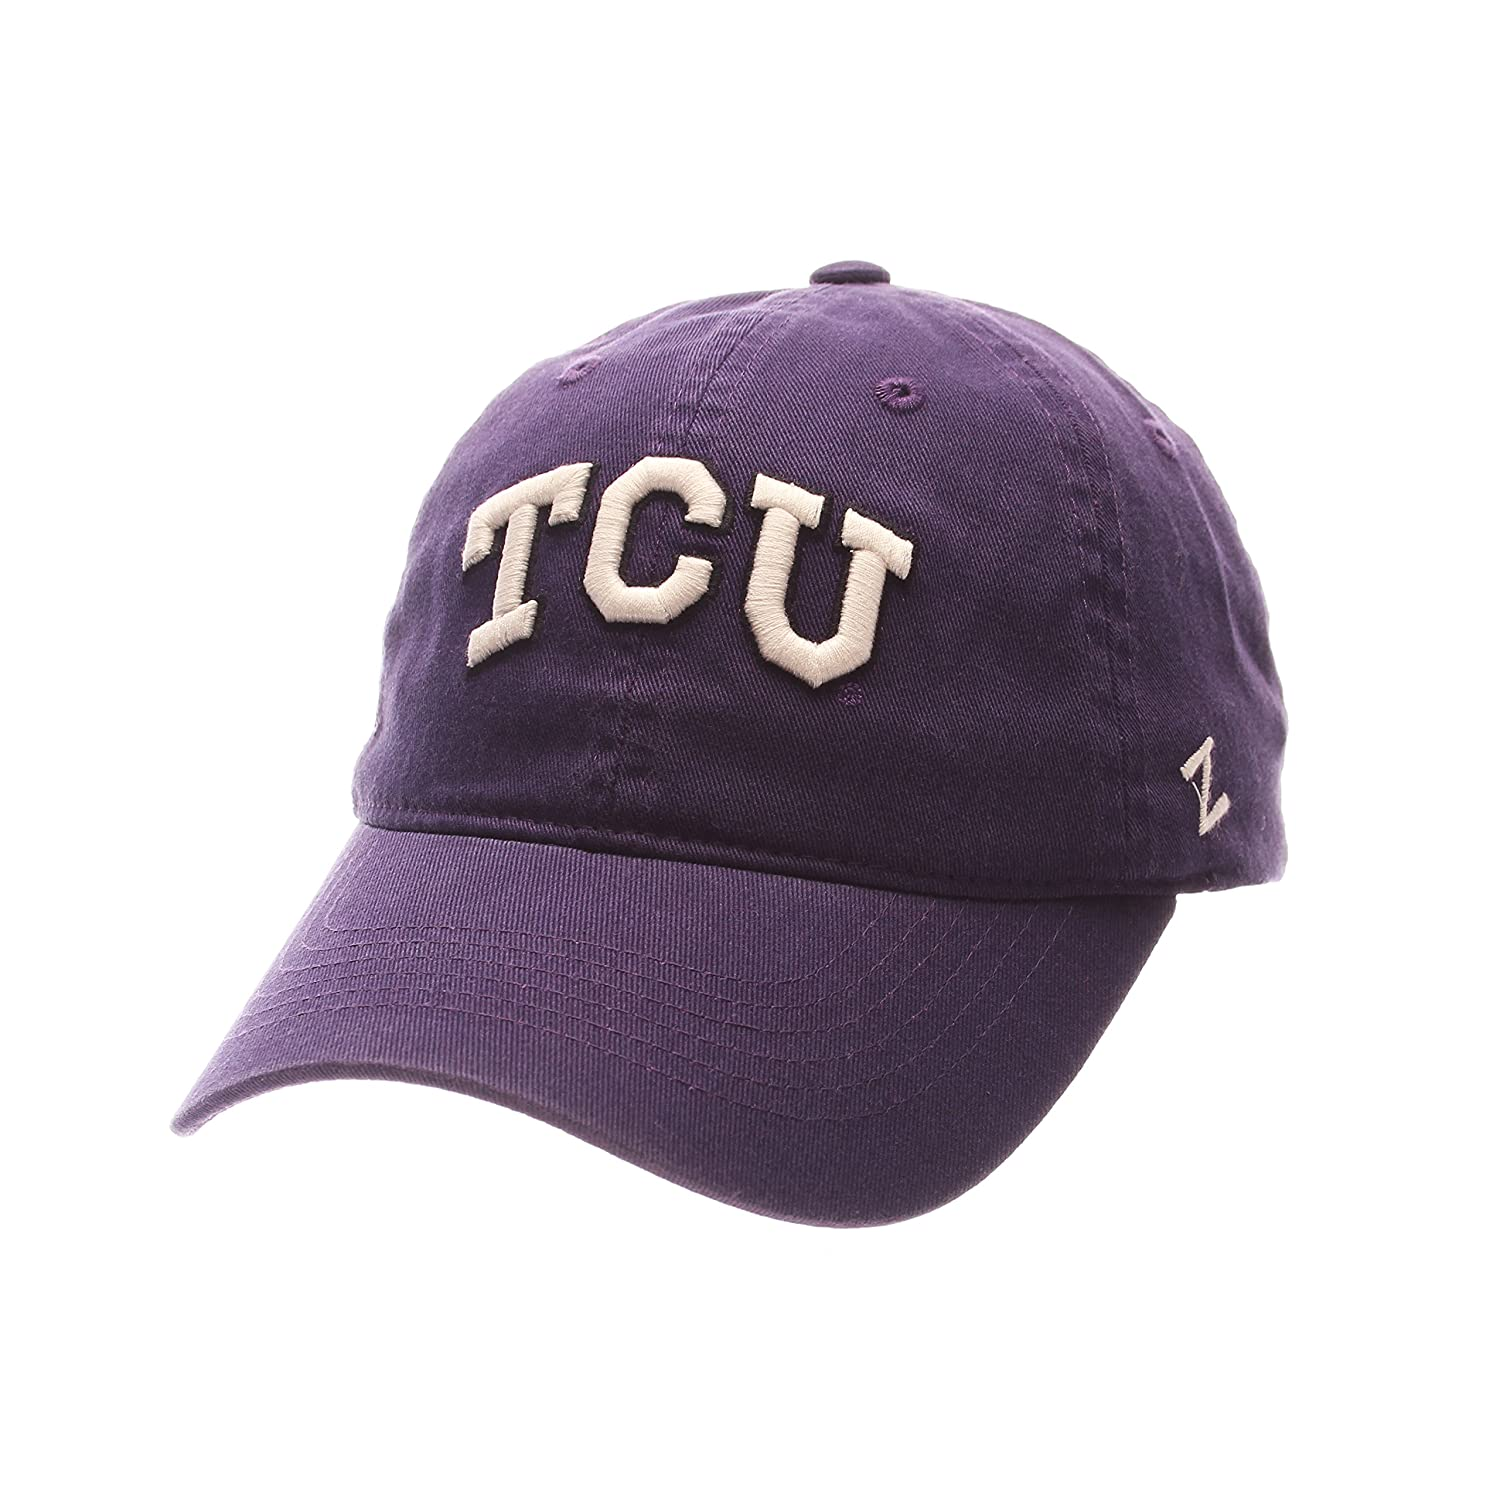 Team Color Adjustable Size NCAA Tcu Horned Frogs Mens Scholarship Relaxed Hat